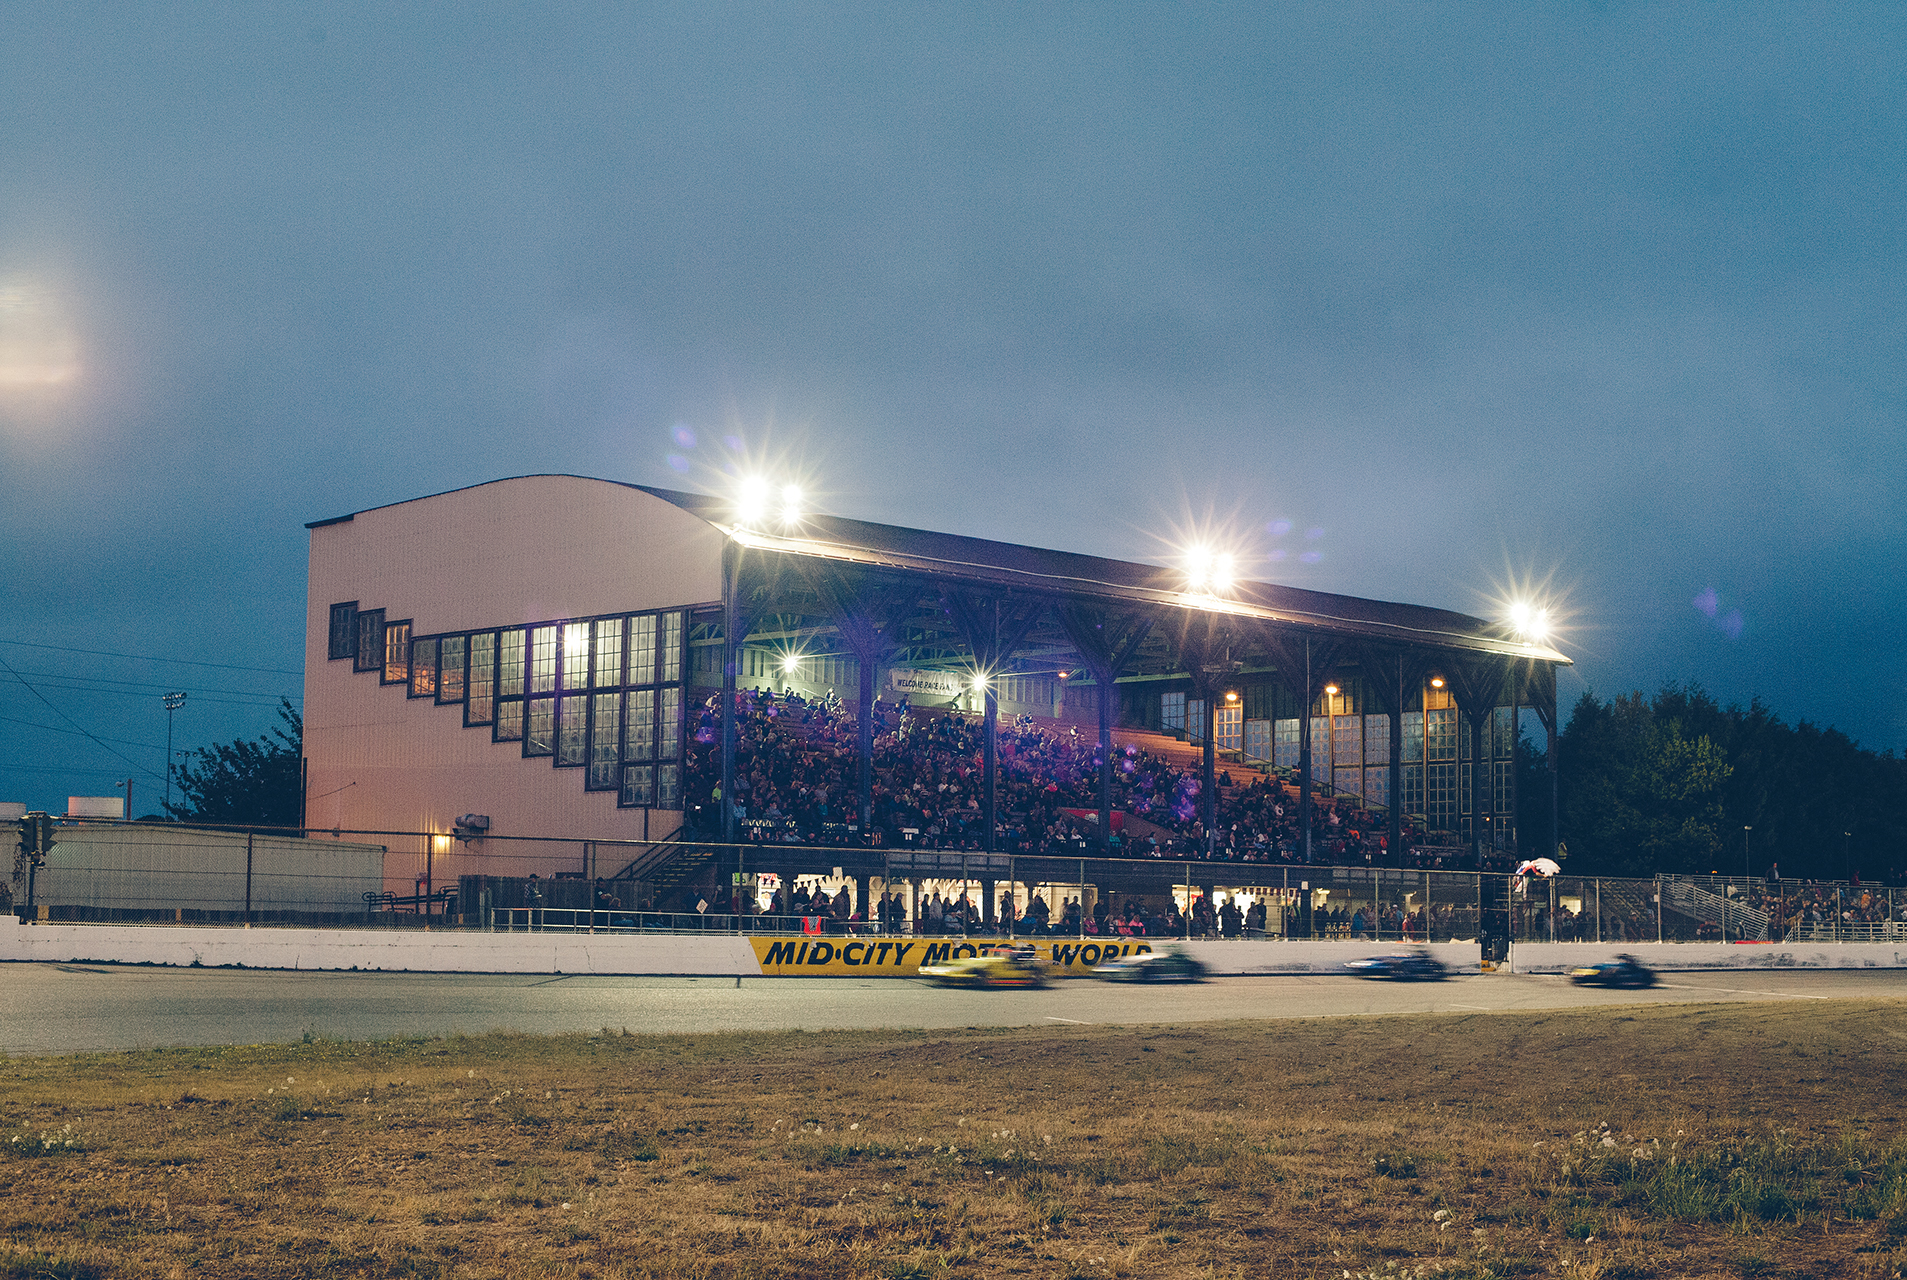 Eureka's main grandstand has been a part of the action since 1947.